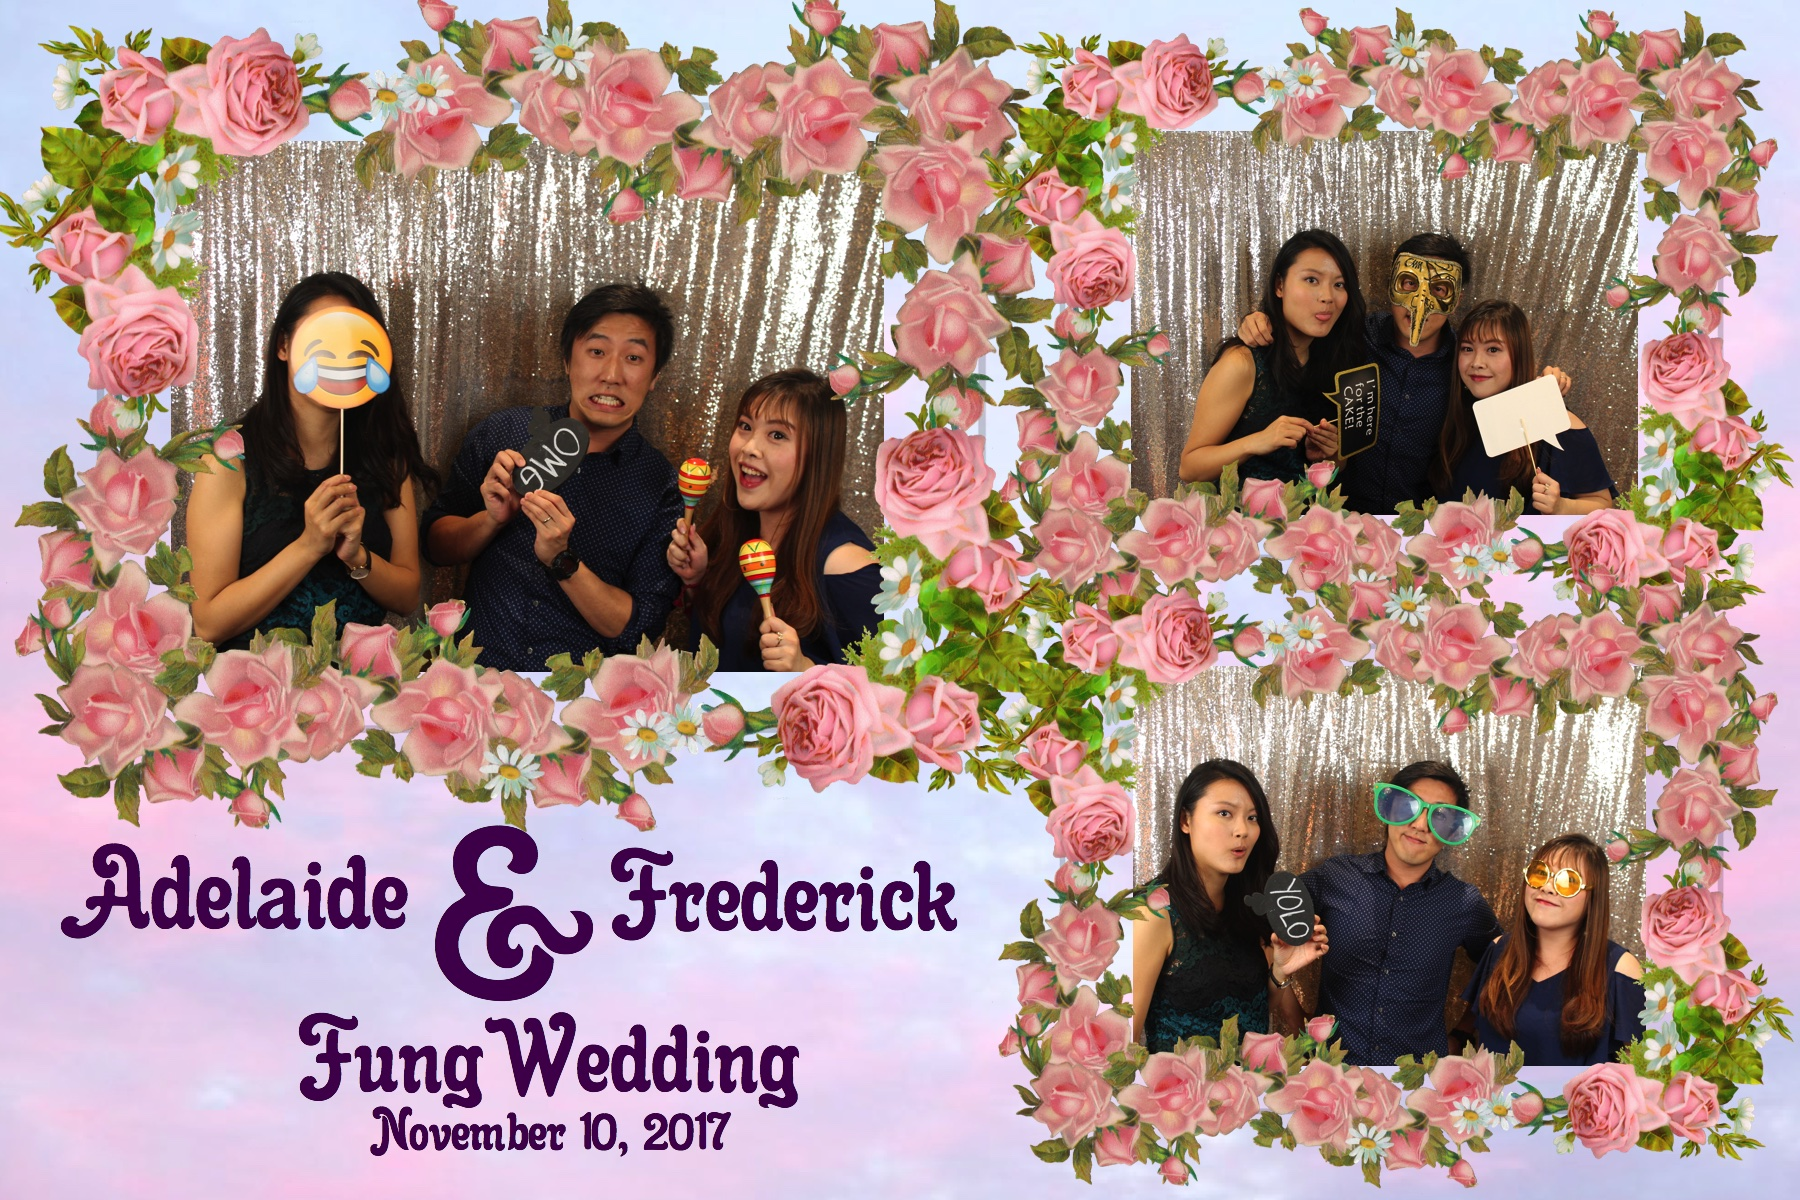 Adelaide & Frederick Fung's Wedding